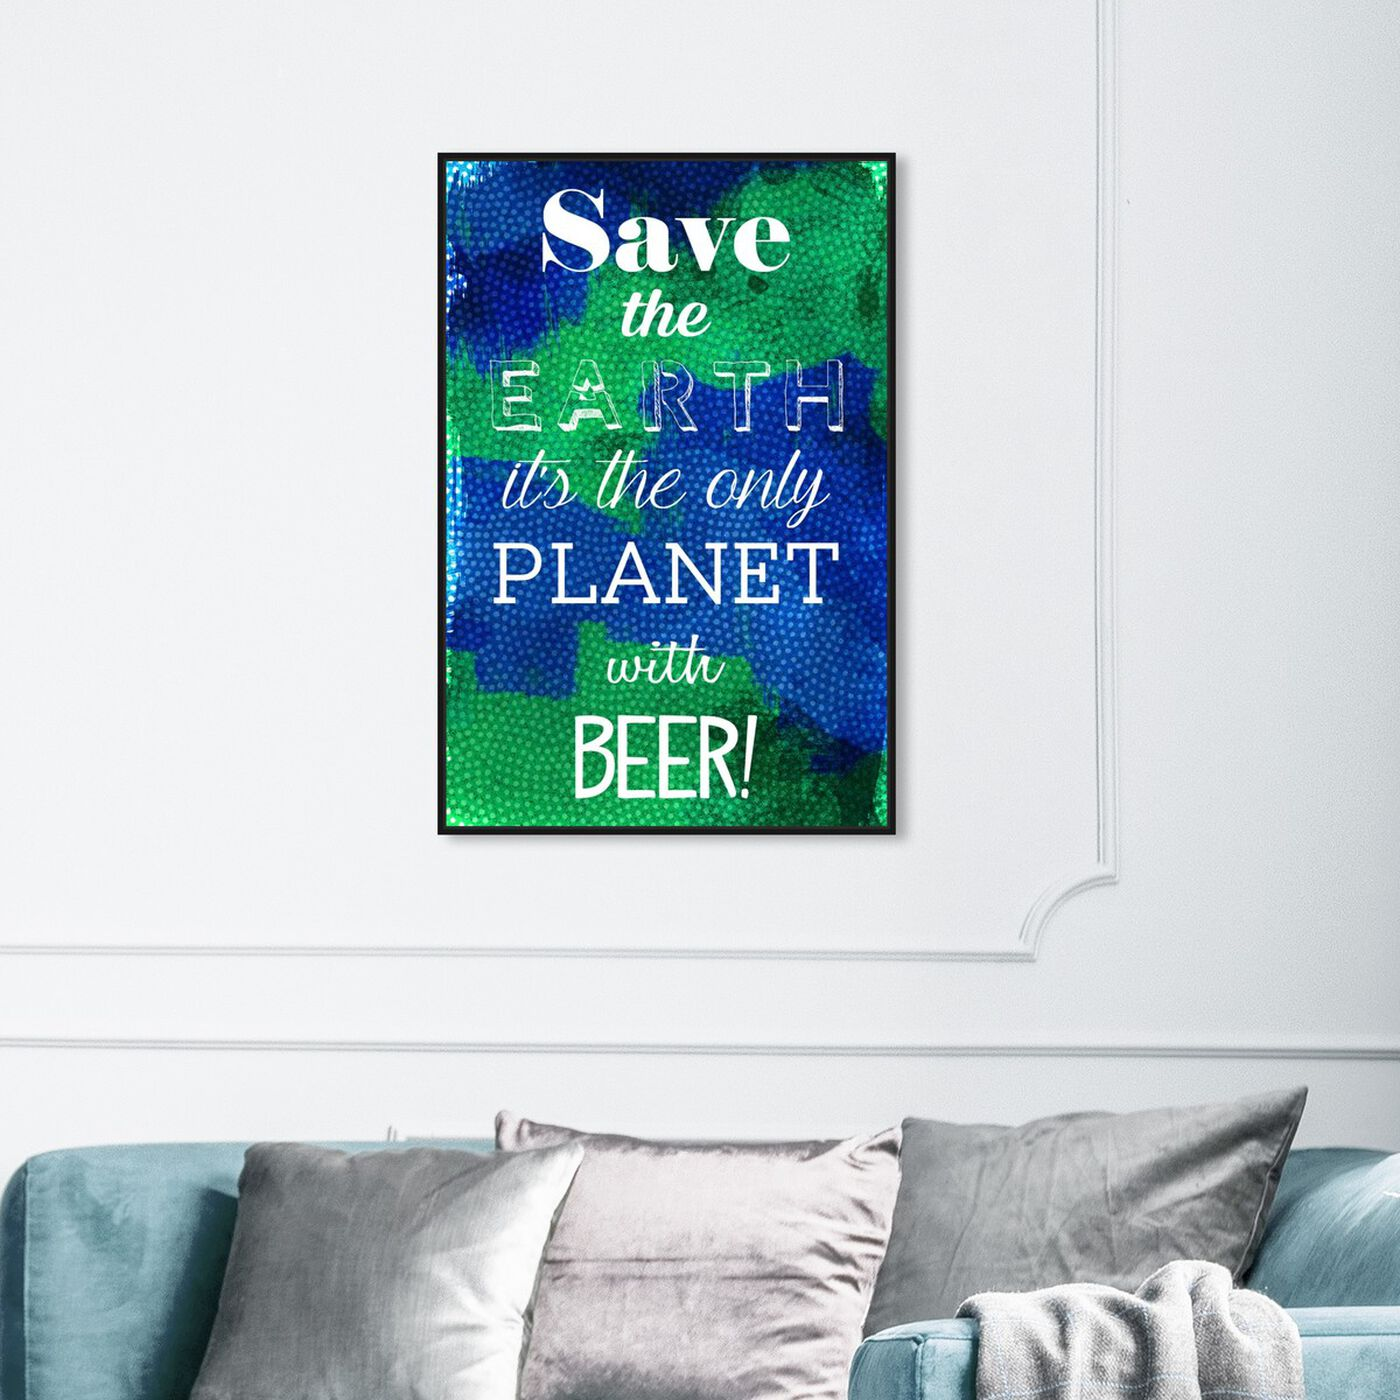 Hanging view of Beer Planet featuring drinks and spirits and beer art.